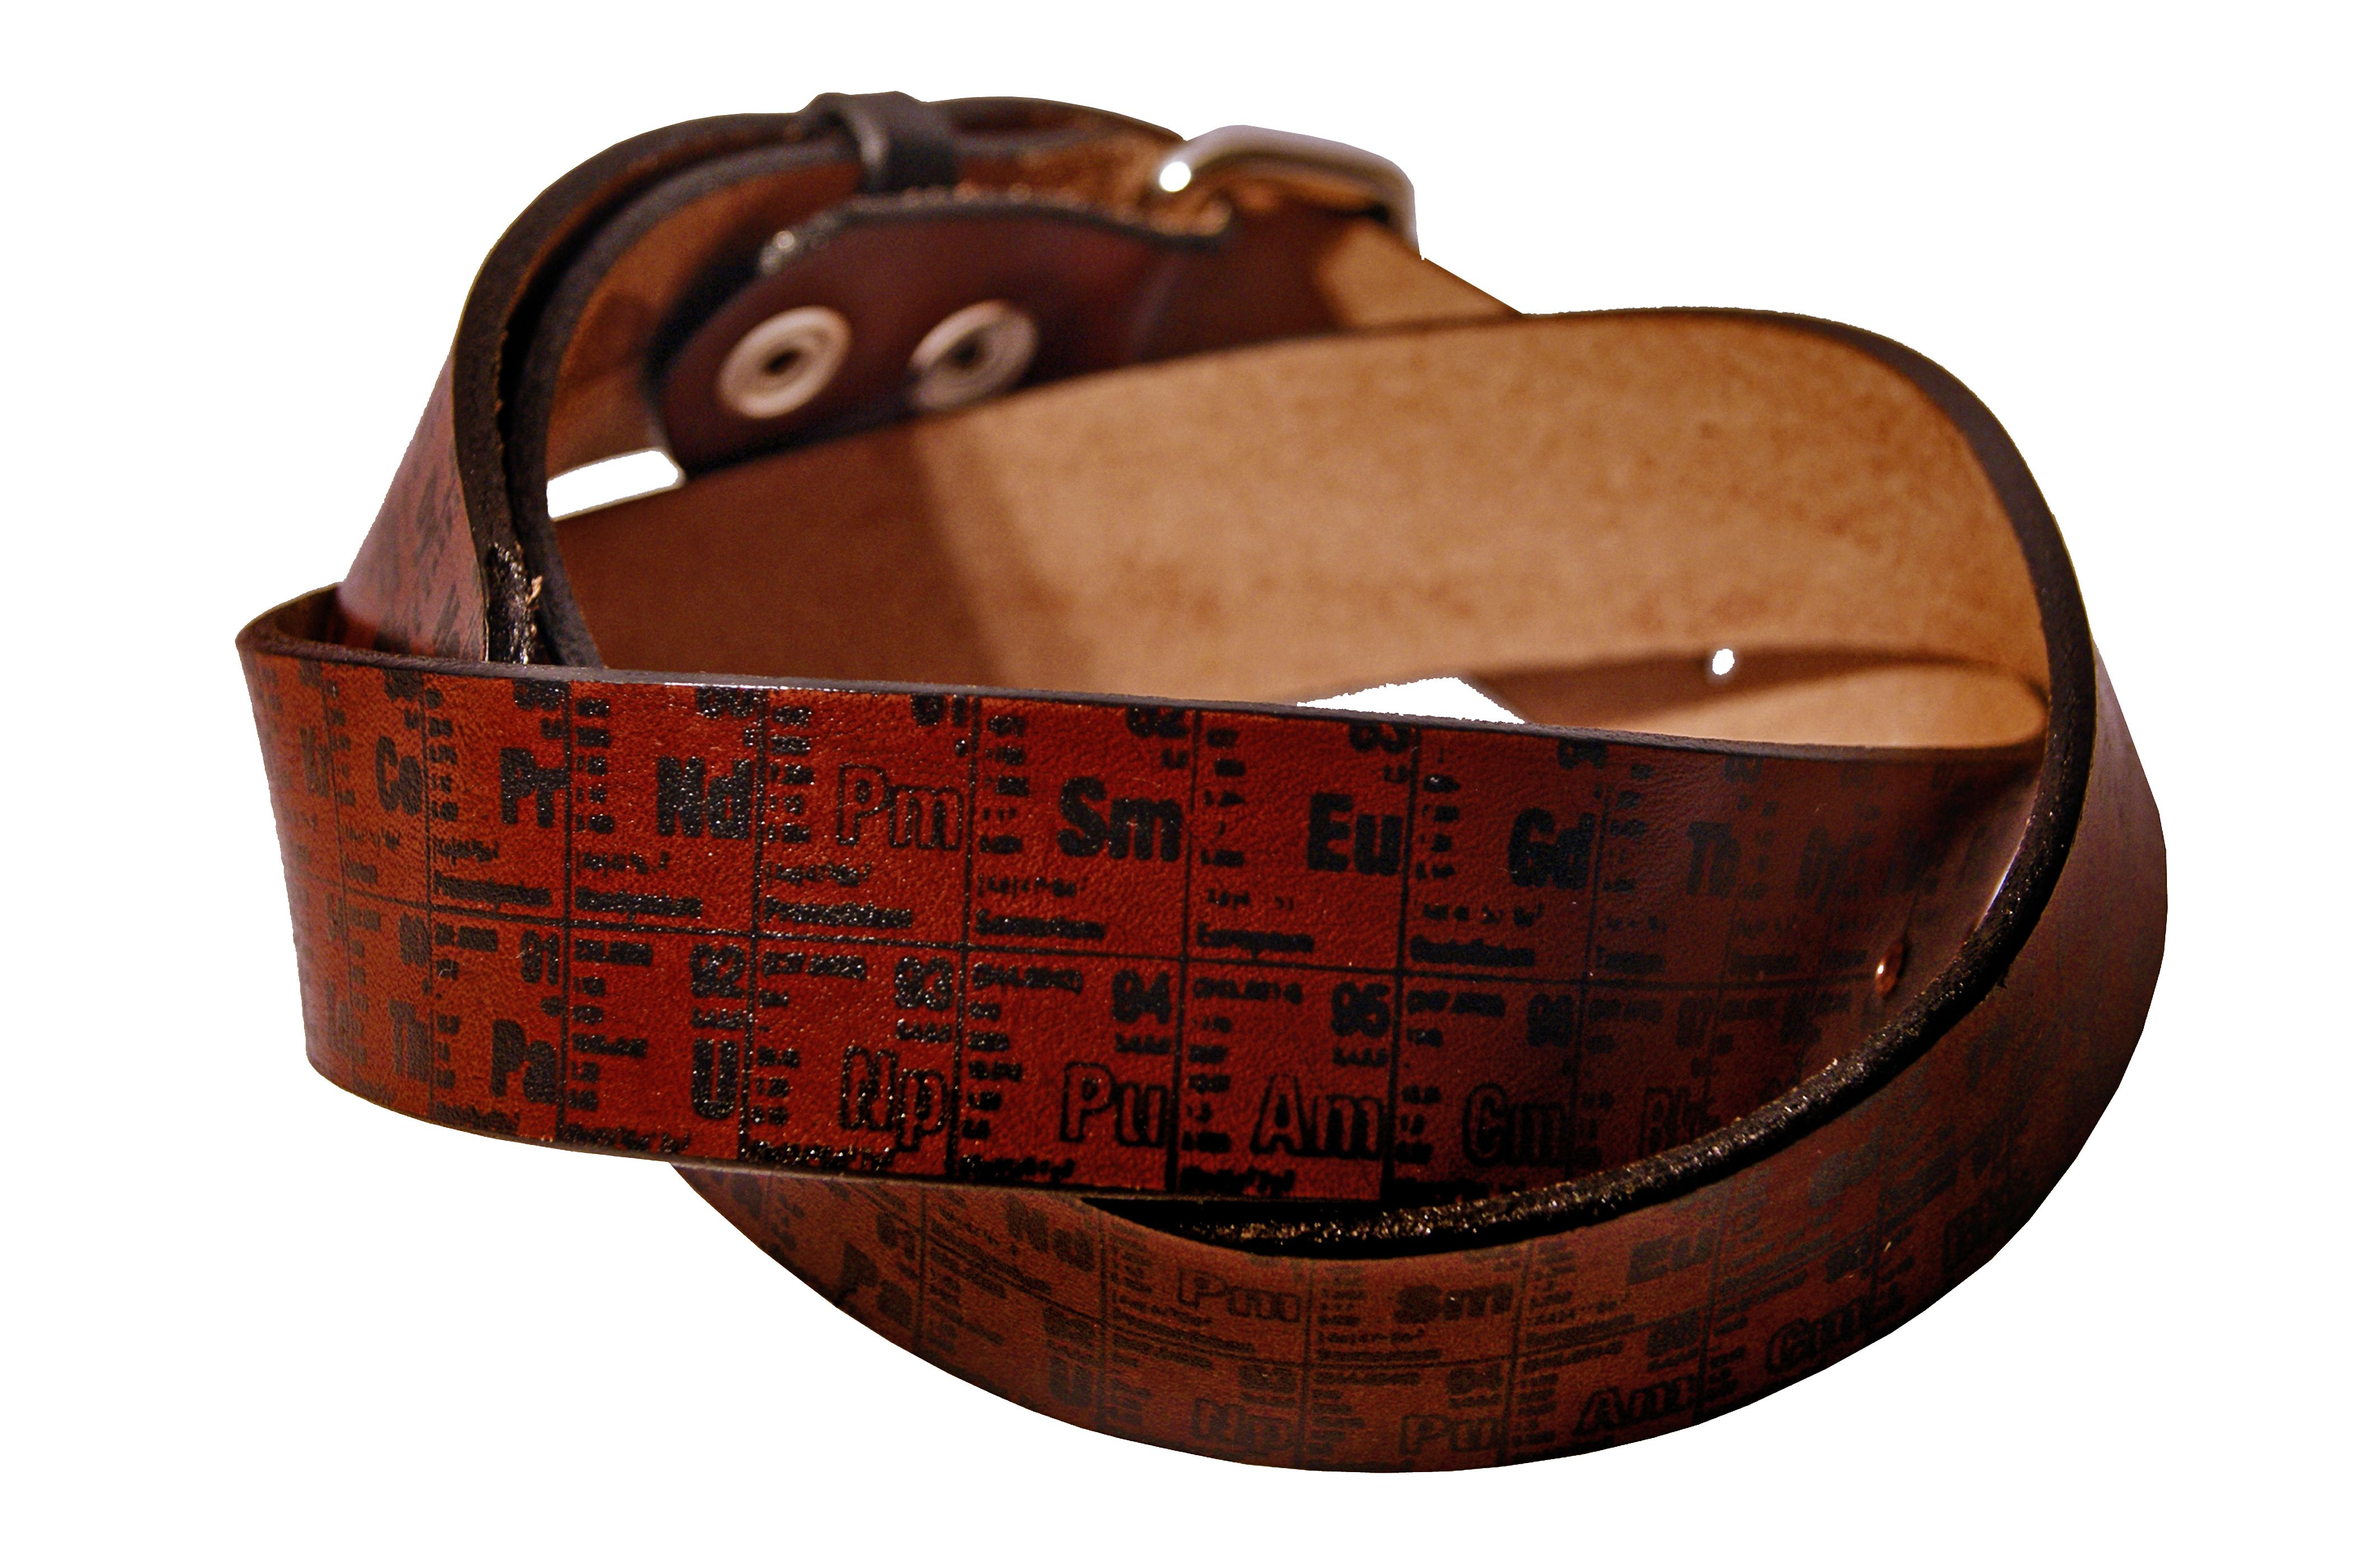 Buy a hand crafted periodic table of elements leather belt made buy a hand crafted periodic table of elements leather belt made to order from project transaction custommade gamestrikefo Image collections